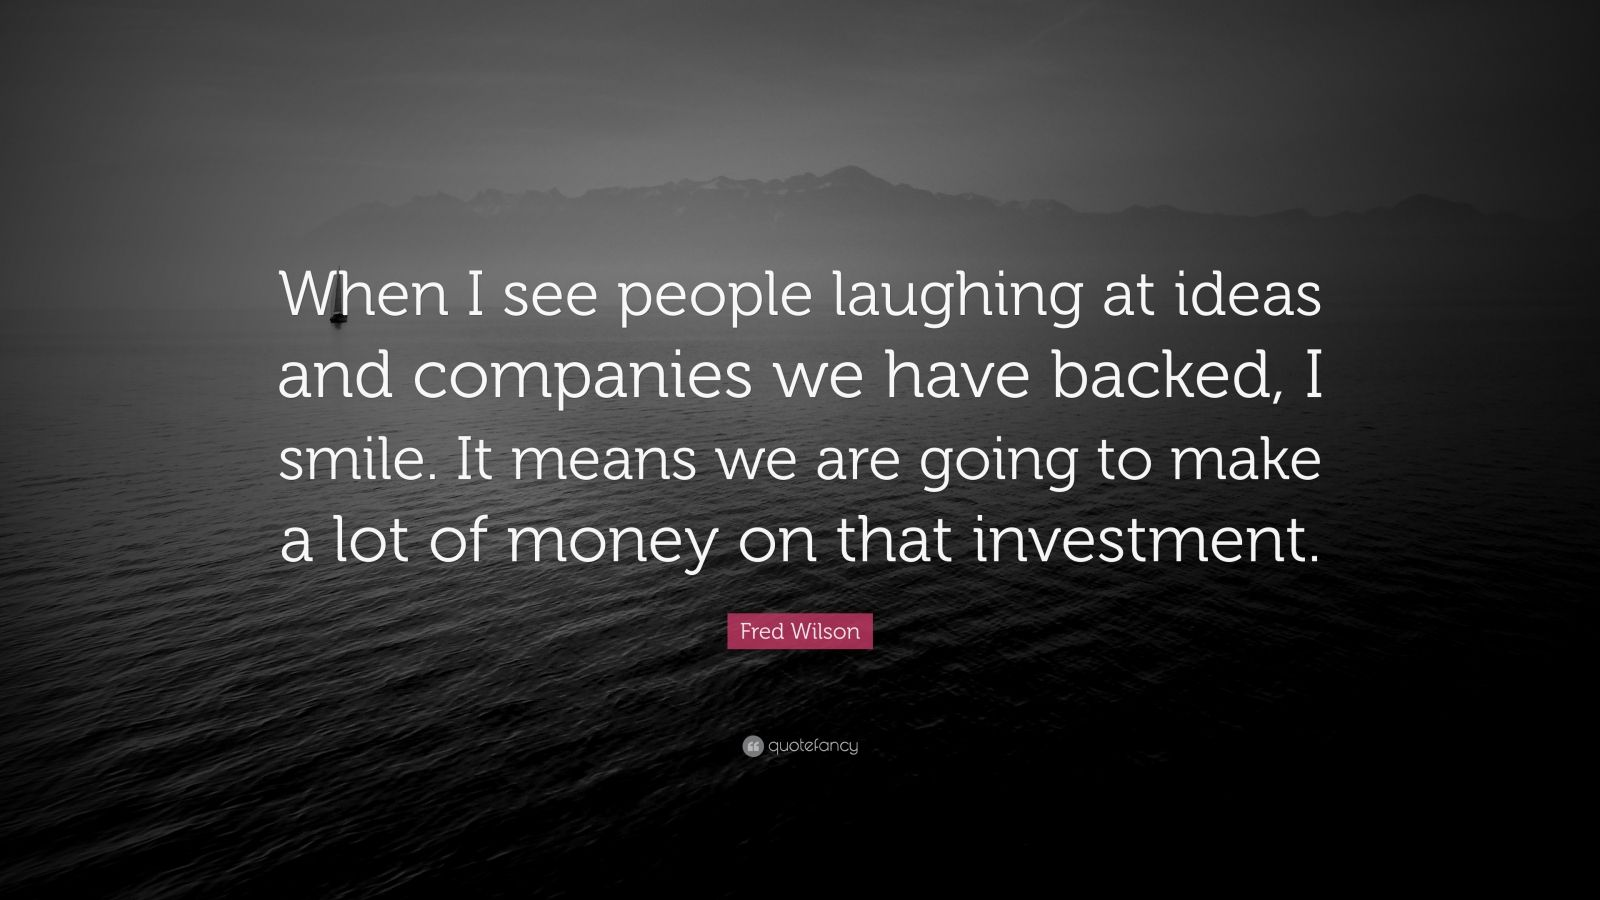 """Fred Wilson Quote: """"When I see people laughing at ideas and companies we have backed, I smile. It means we are going to make a lot of money on that investment."""""""